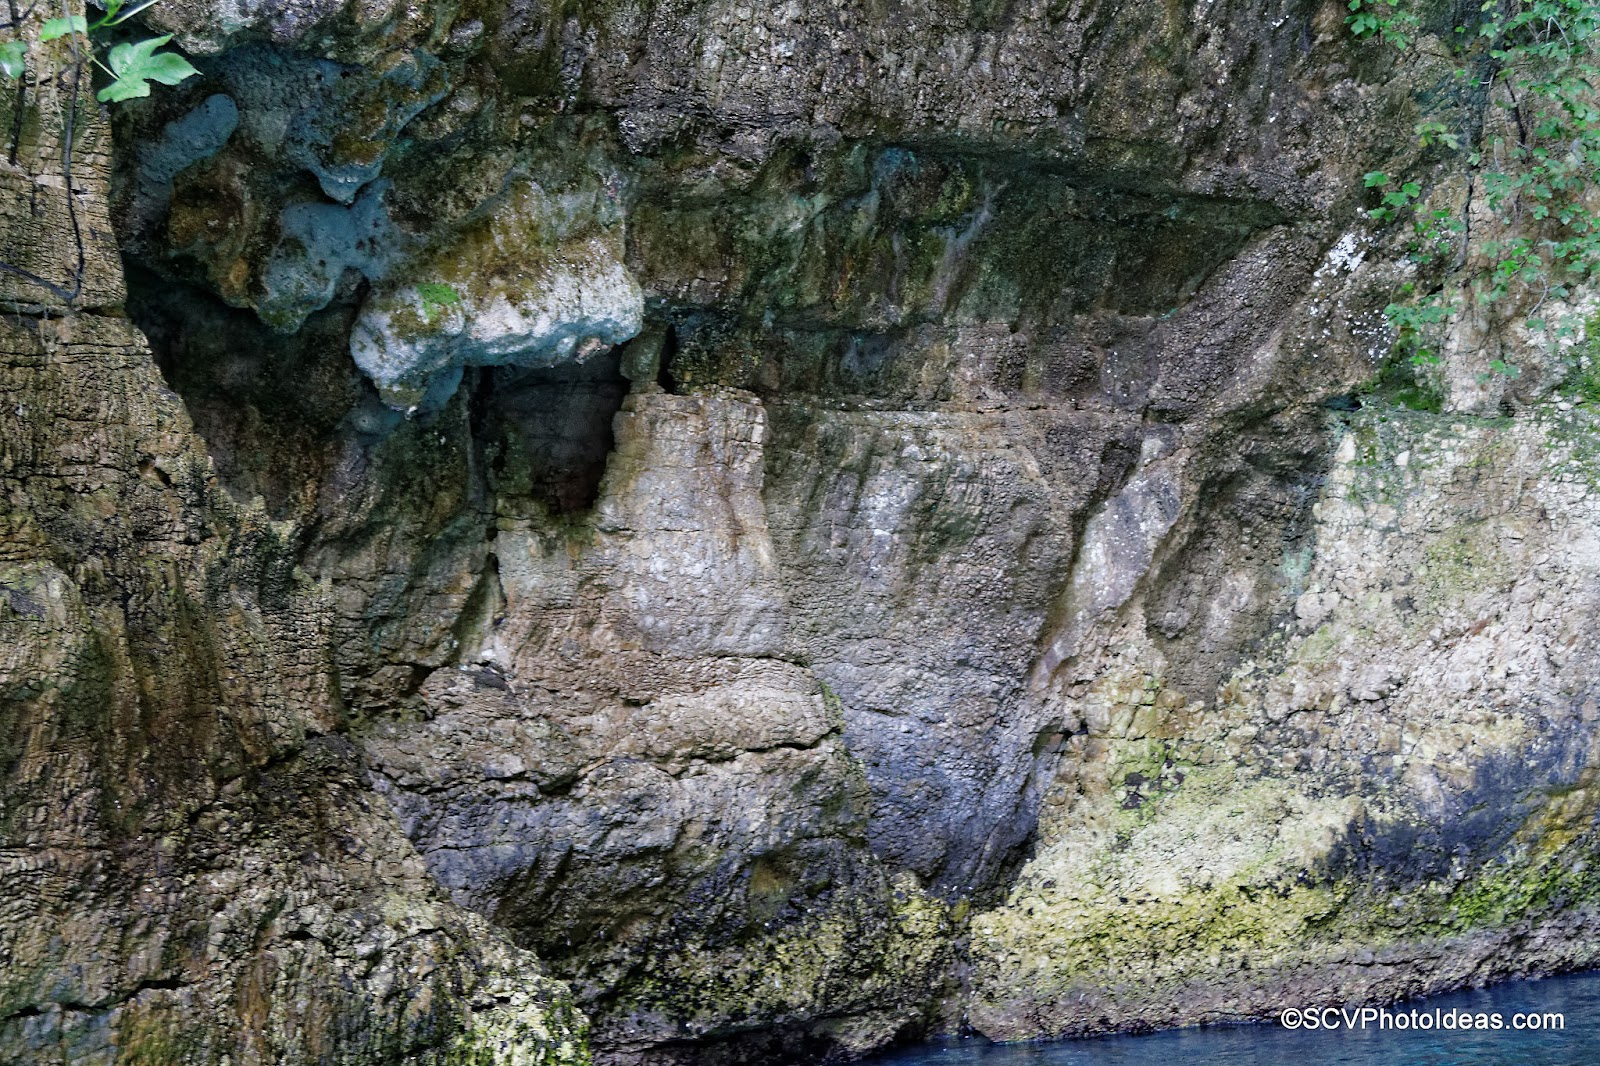 Melissani Cave wall carvings